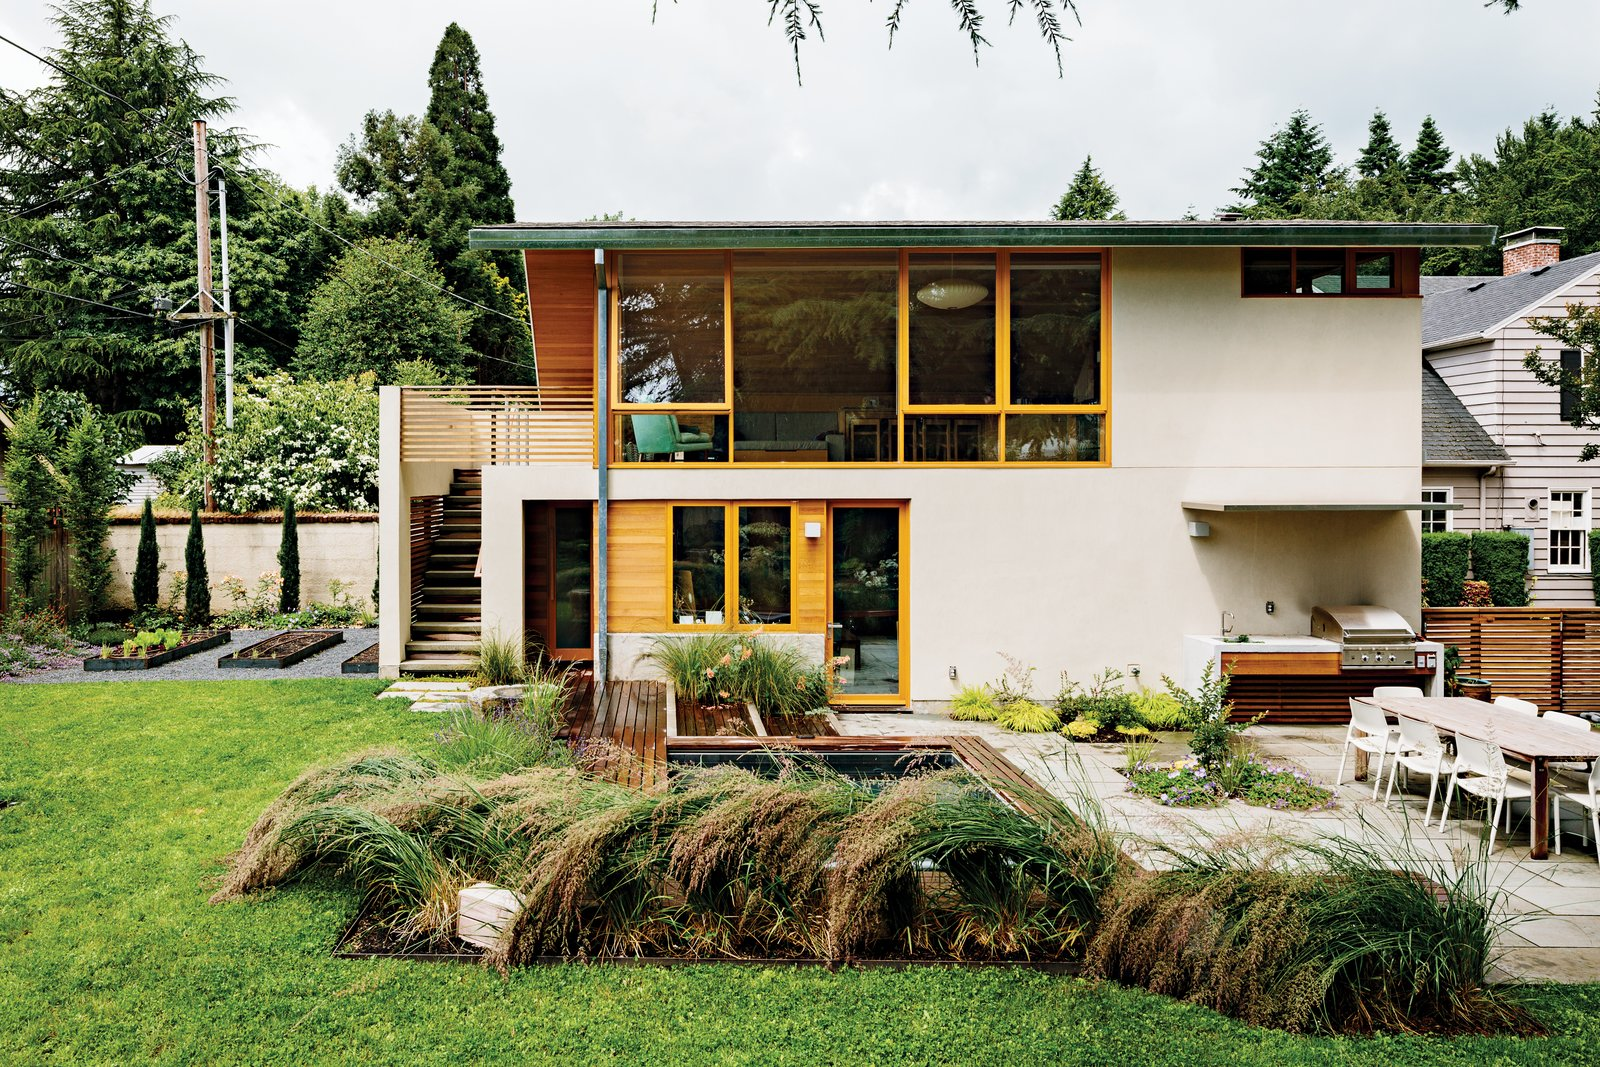 Outdoor, Grass, Small Patio, Porch, Deck, Concrete Patio, Porch, Deck, Back Yard, Gardens, Shrubs, and Trees Fusion Landscape Design worked with PATH to remake the backyard into a grown-up playground. Under the stairwell sits a tiny custom cedar sauna and an outdoor shower—just a literal hop, skip, and jump away from the sprawling in-ground eight-by-ten-foot hot tub. Down three short stairs, Gloster's Elan dining table from Design Within Reach is surrounded by Spark chairs by Don Chadwick for Knoll and a built-in fire pit and DCS grill by Fisher & Paykel—all resting on a smooth surface of bluestone pavers.  Photo 10 of 10 in Salvaged Wood Renovation in Portland